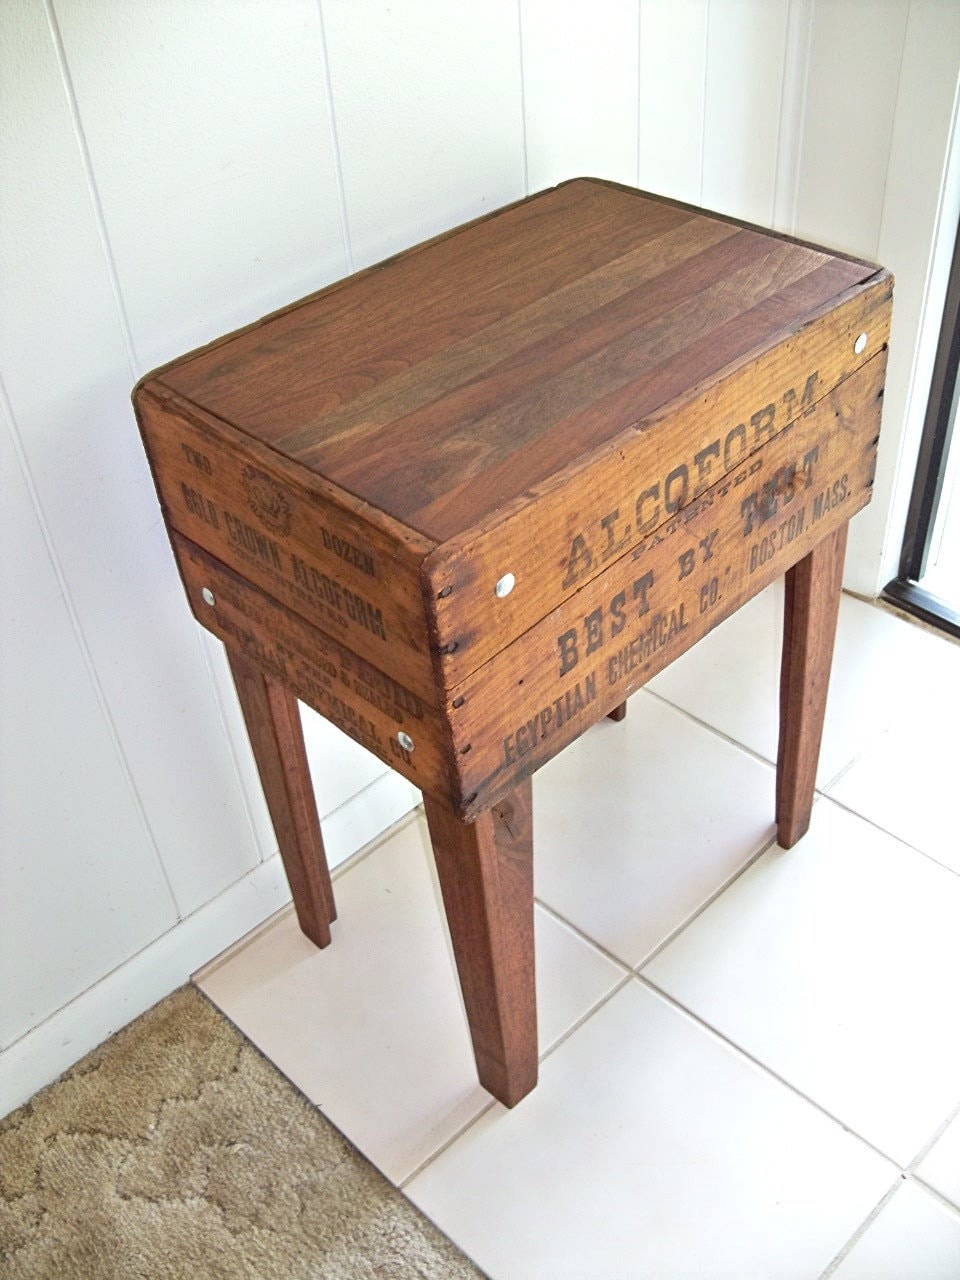 Embalming fluid shipping crate table walnut legs by